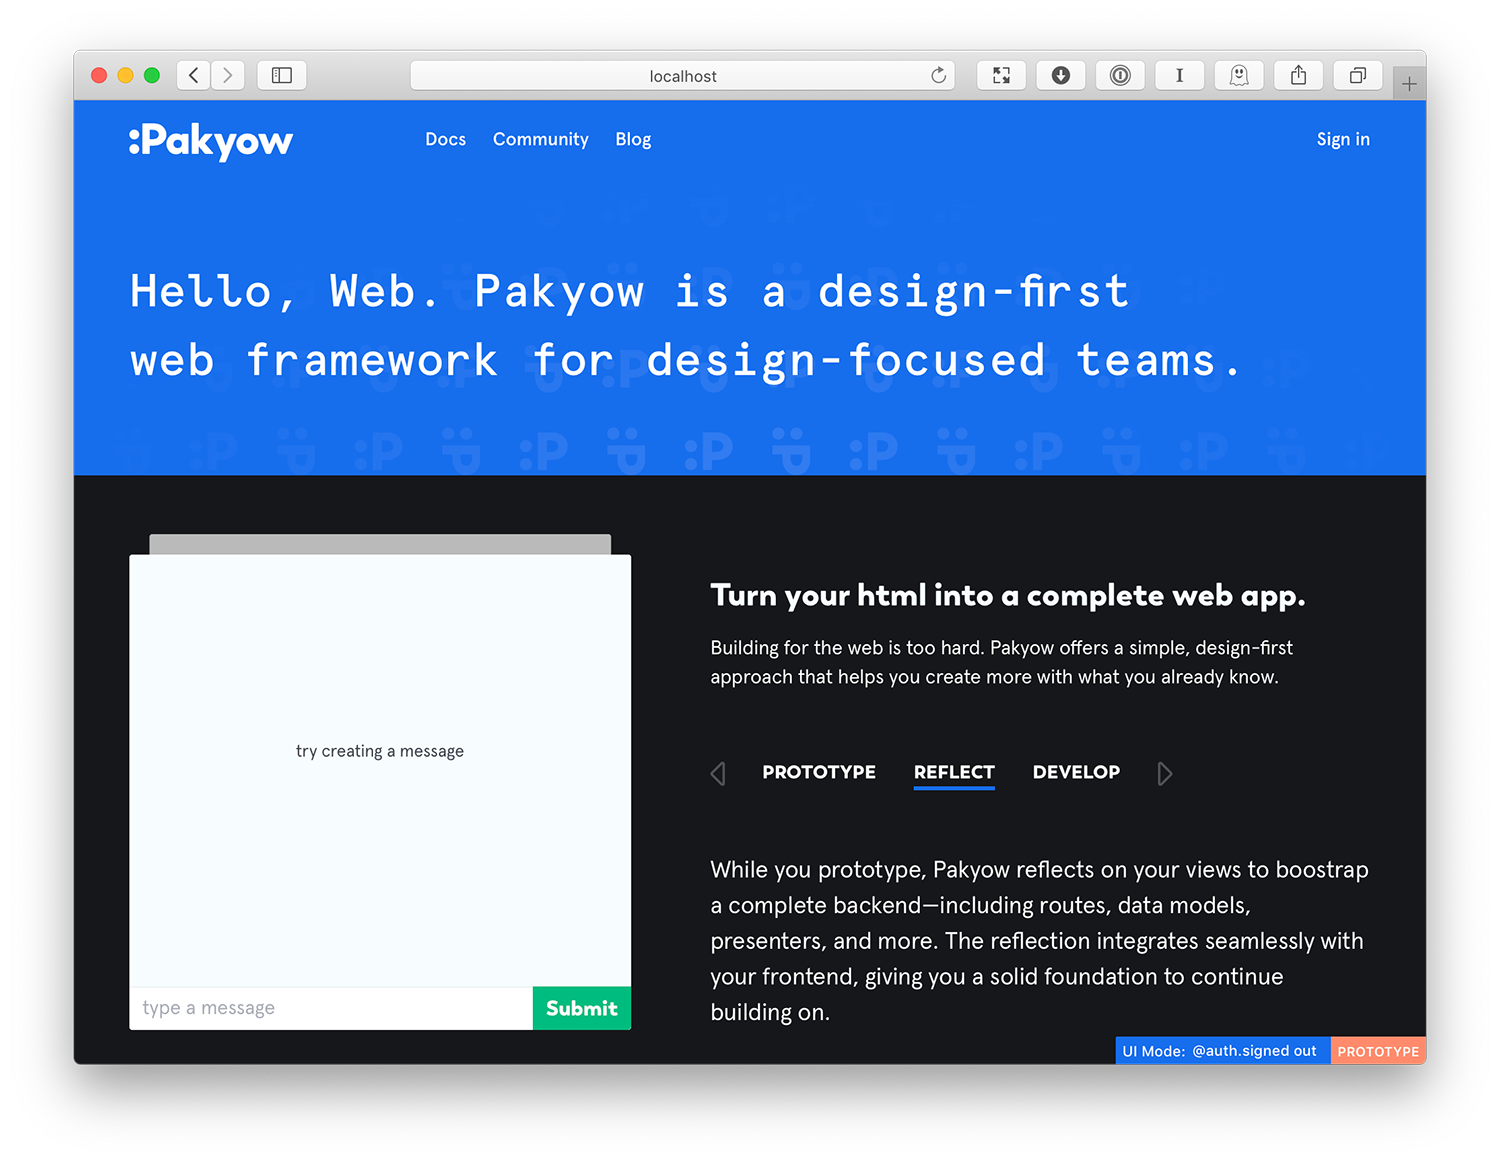 Pakyow.com Homepage in Prototype Mode